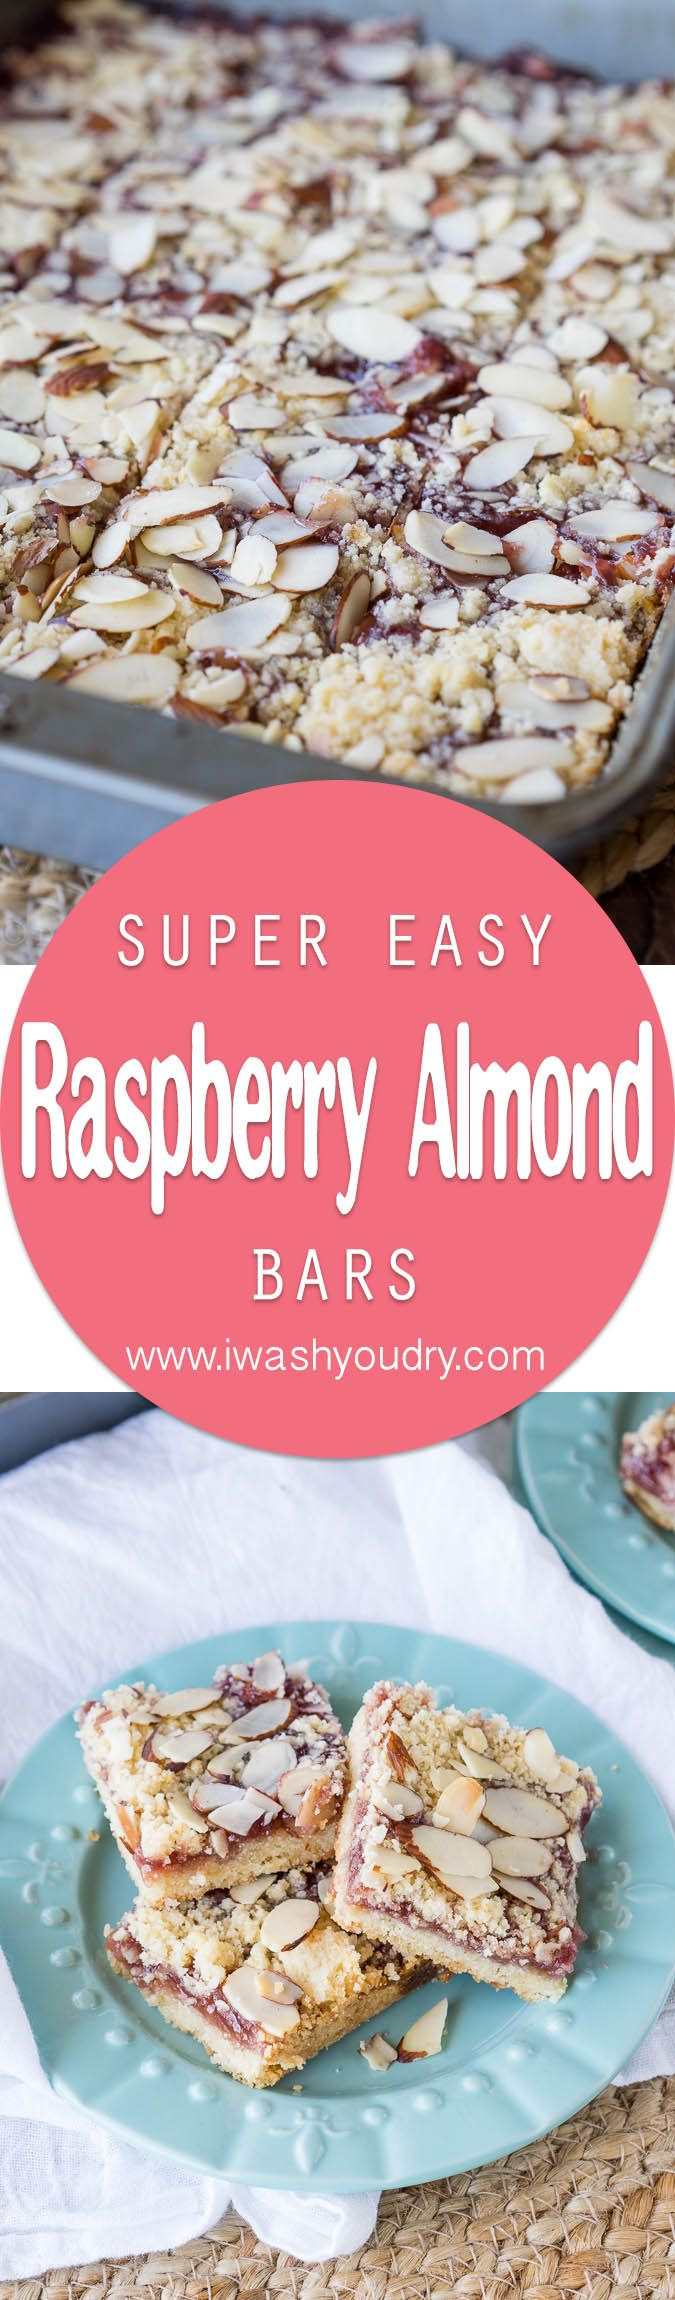 These soft and tender Raspberry Almond Bars have a shortbread cookie type crust and a wonderful almond flavor!